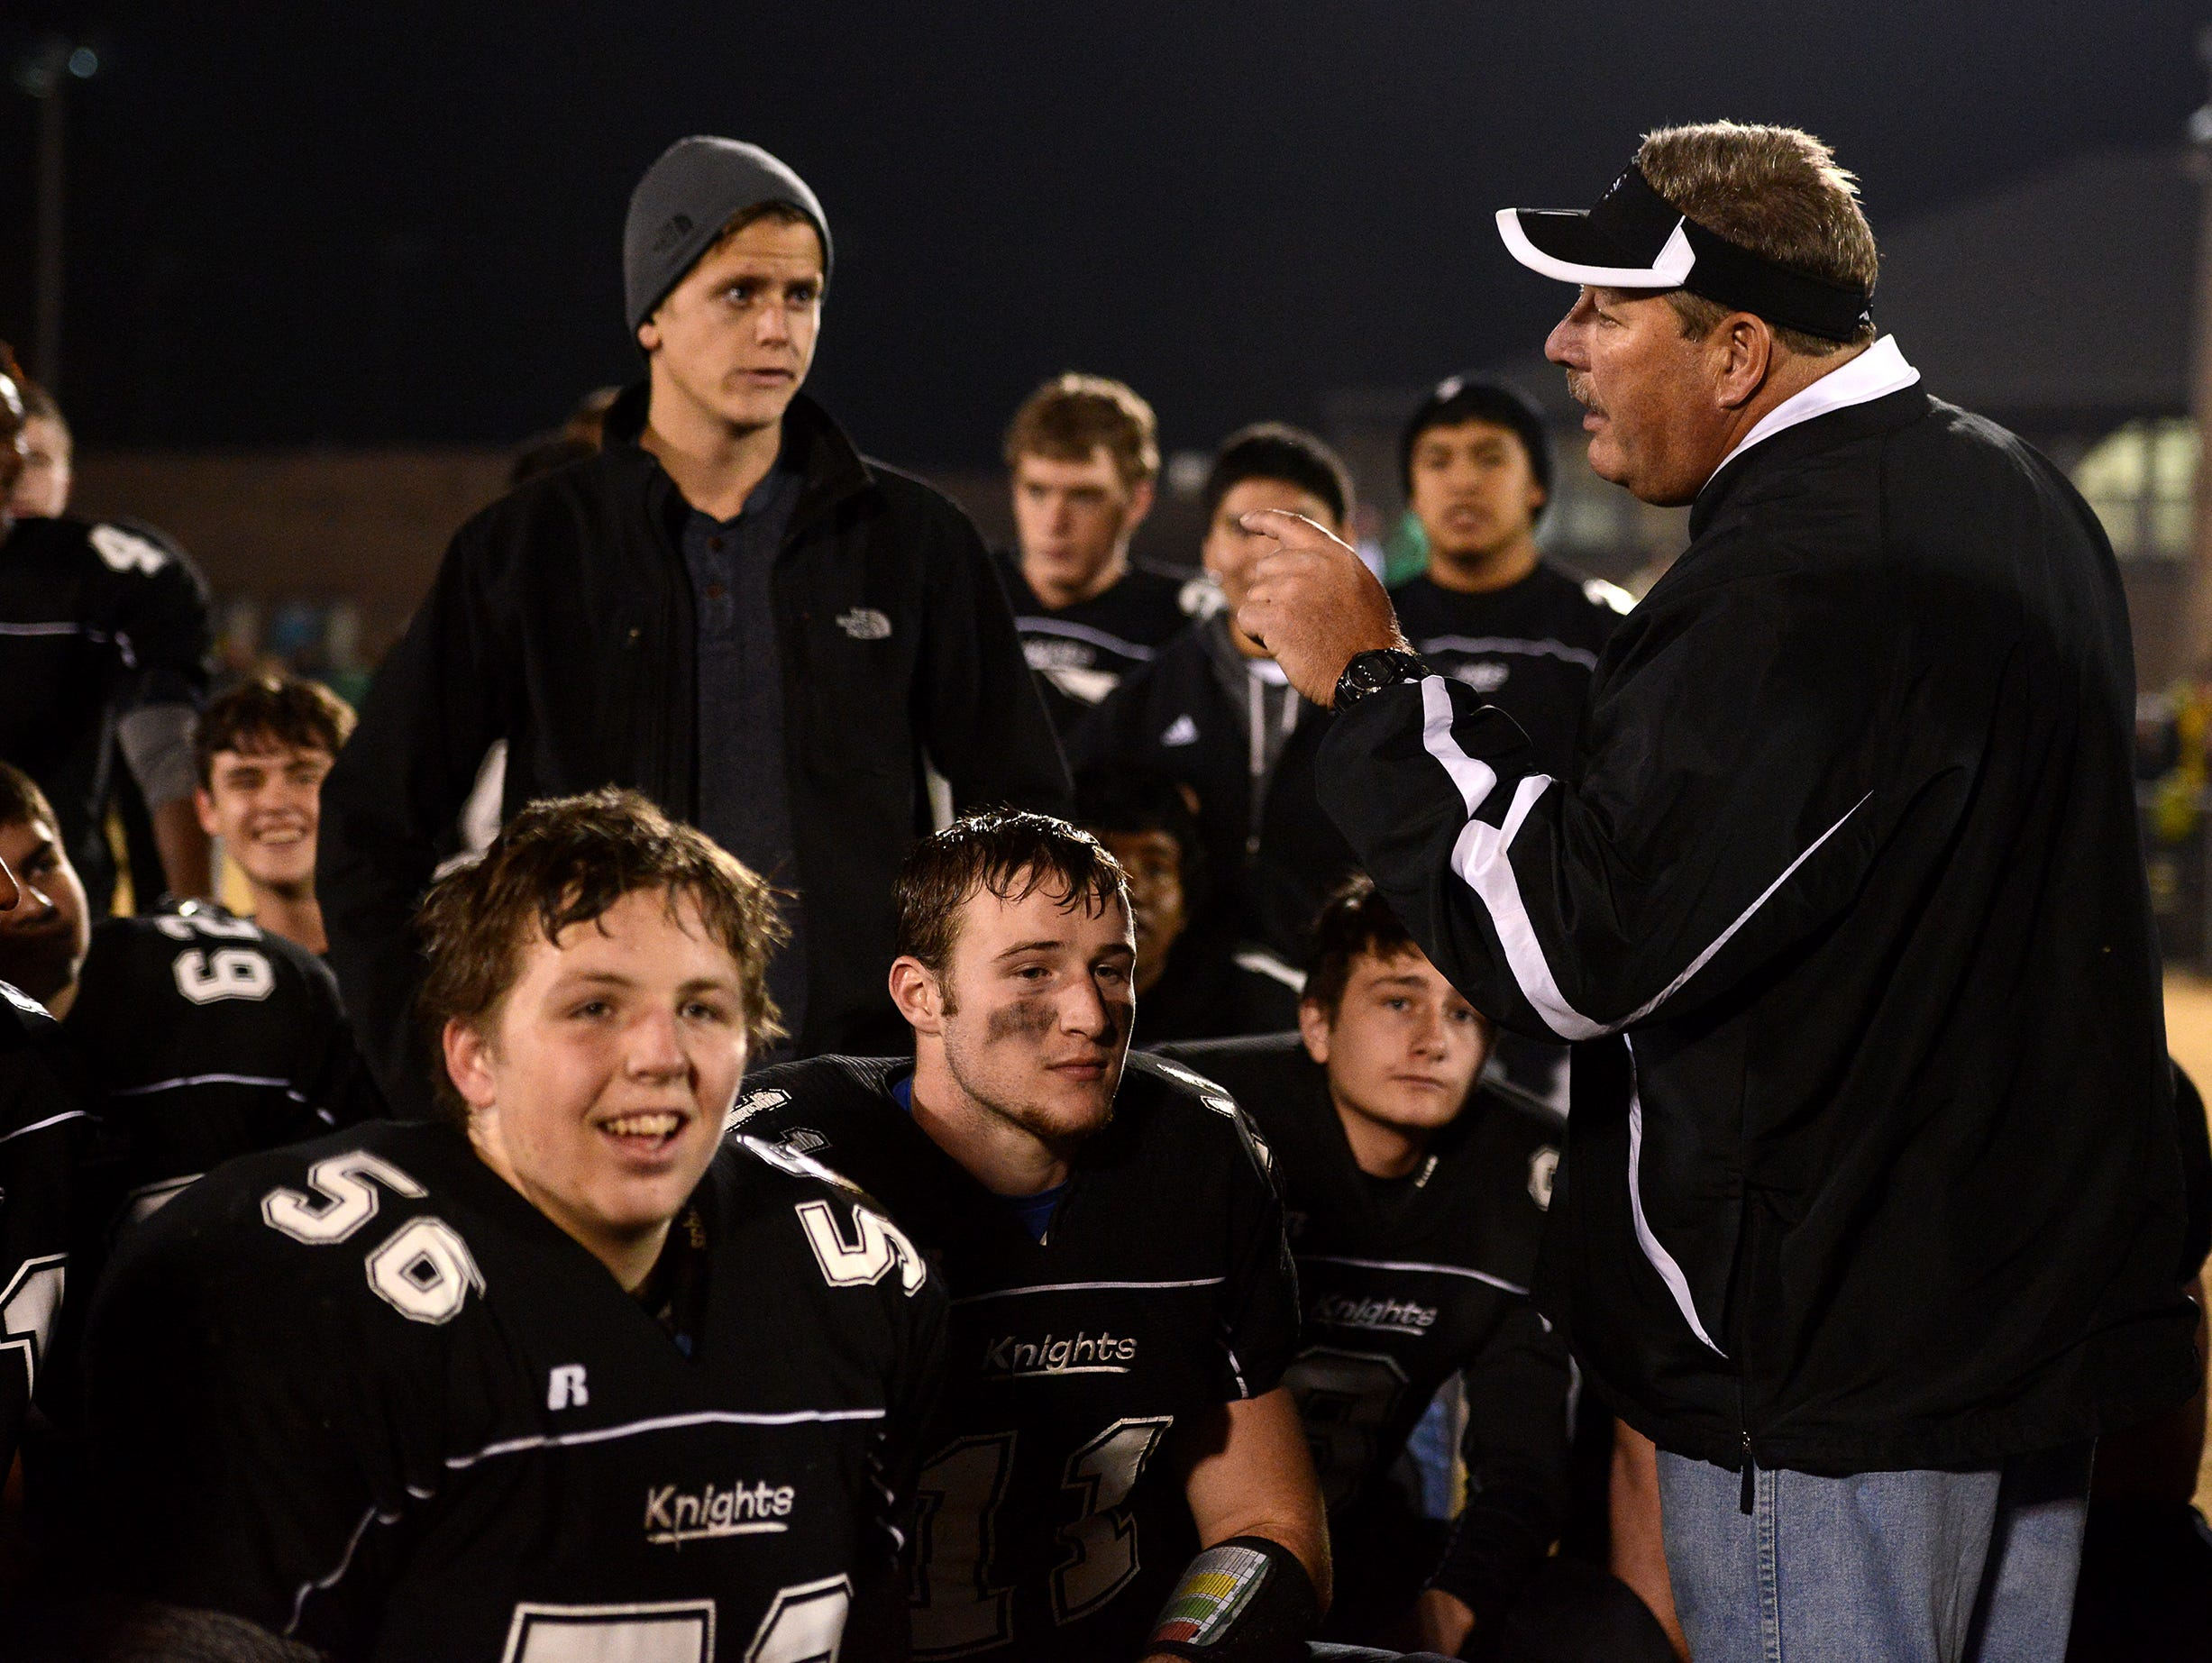 Robbinsville football coach Dee Walsh has won 112 games with the Black Knights, including a 16-0 mark in 2014.